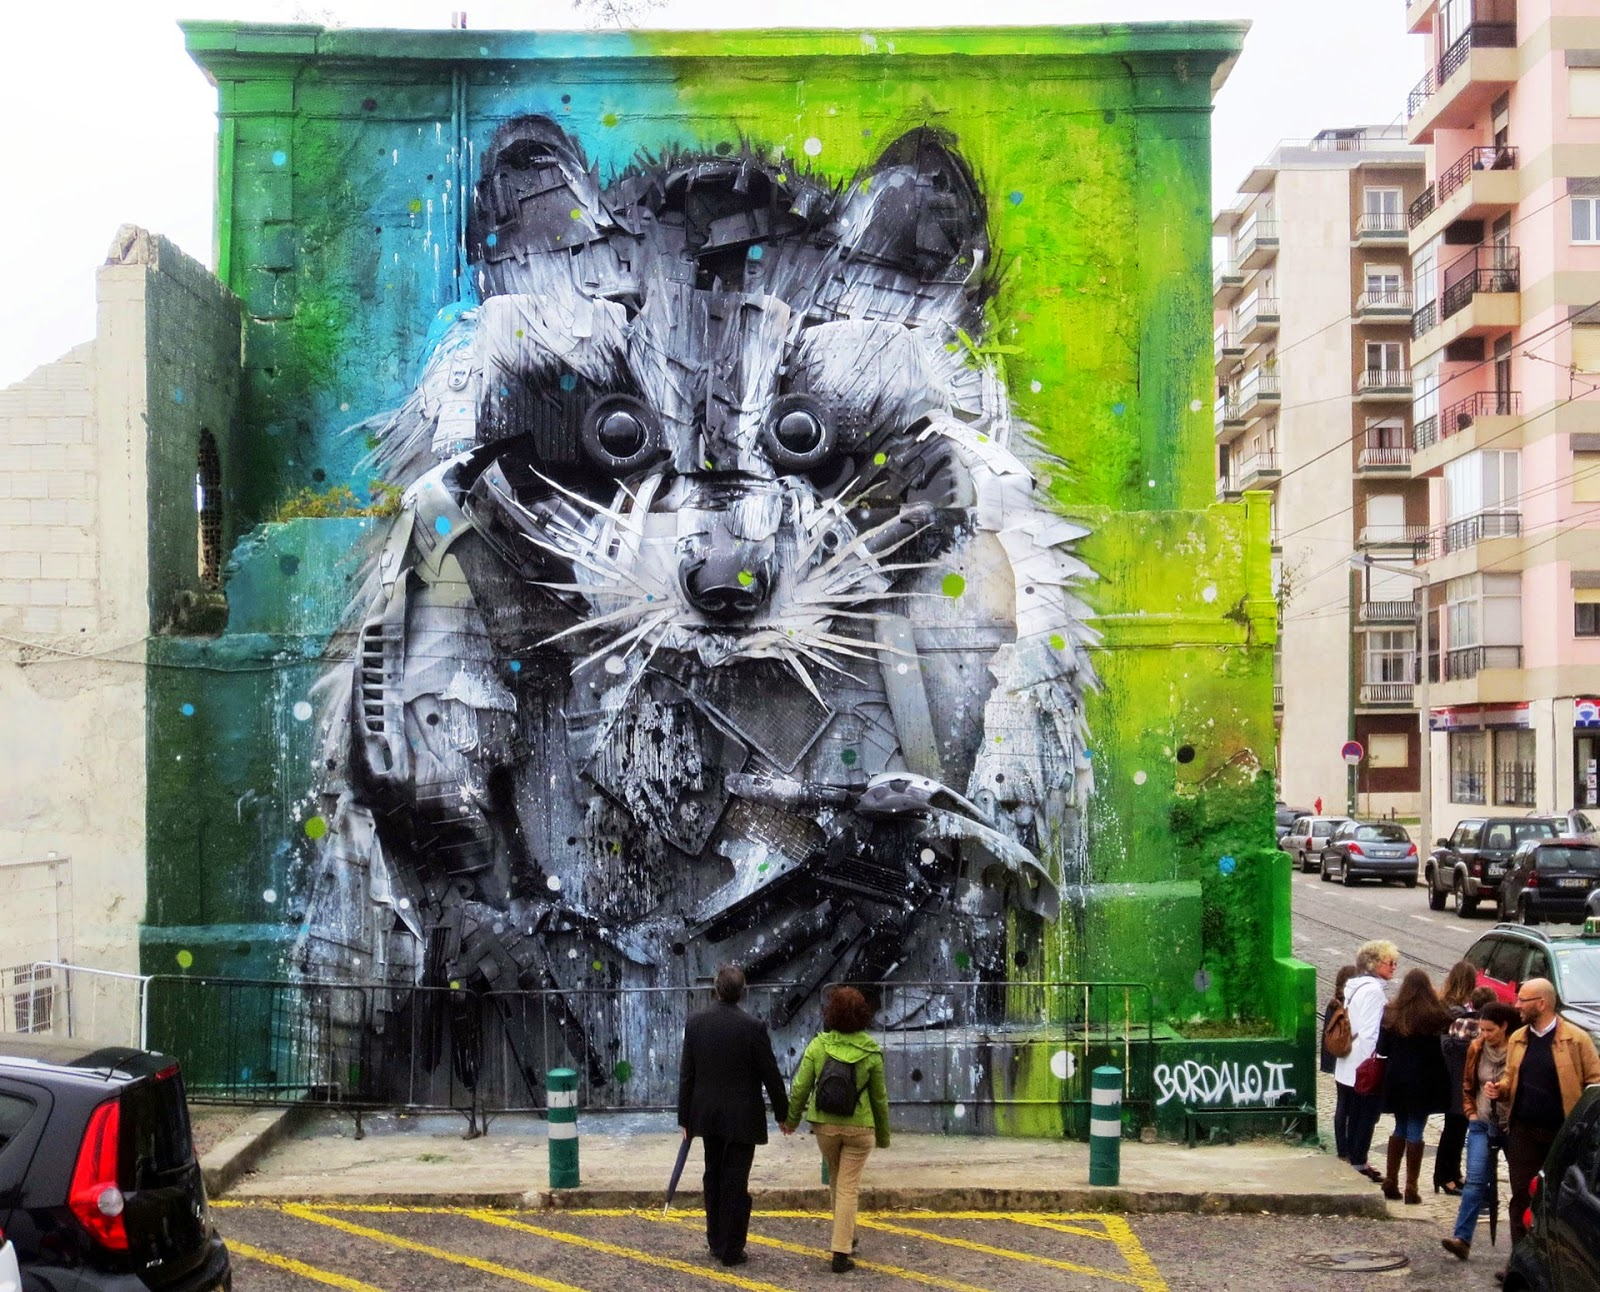 Our friend Bordalo II is currently in Belem, the southwesternmost civil parish of the municipality of Lisbon where he just finished working on an impressive installation Centro Cultural de Belém.